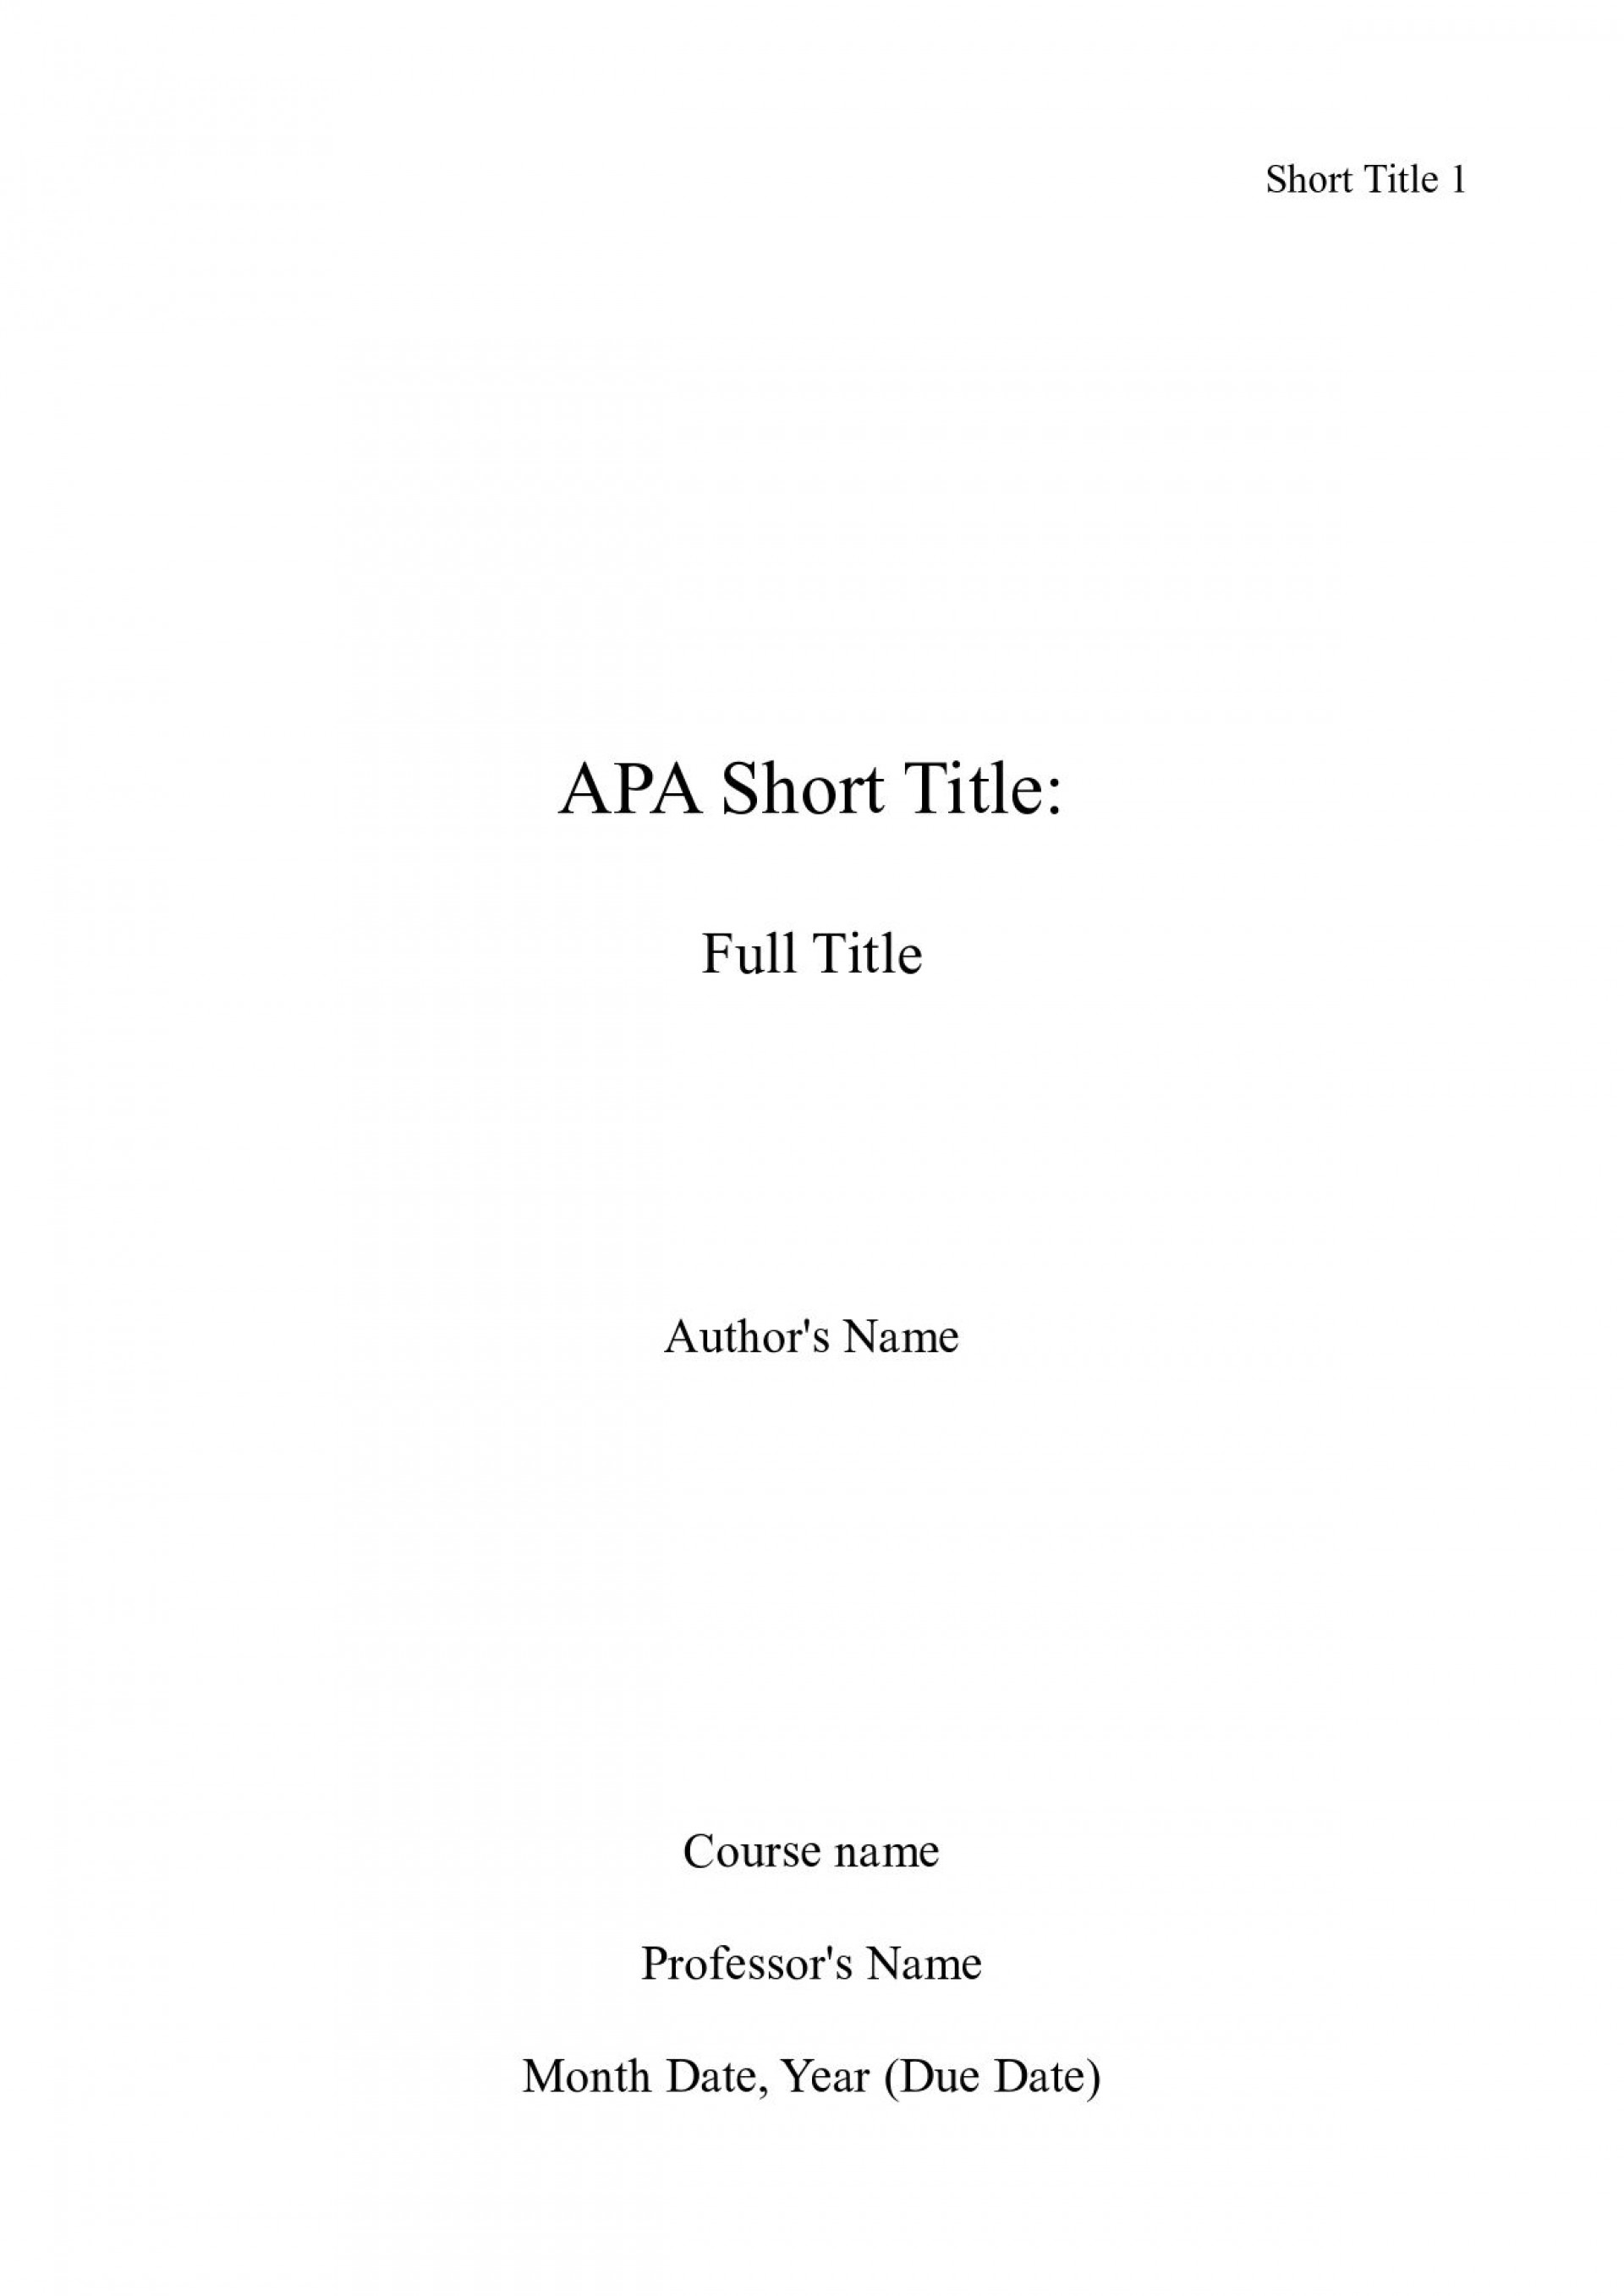 003 Research Paper Cover Page Apa Excellent Template Layout Format Sample Title 1920